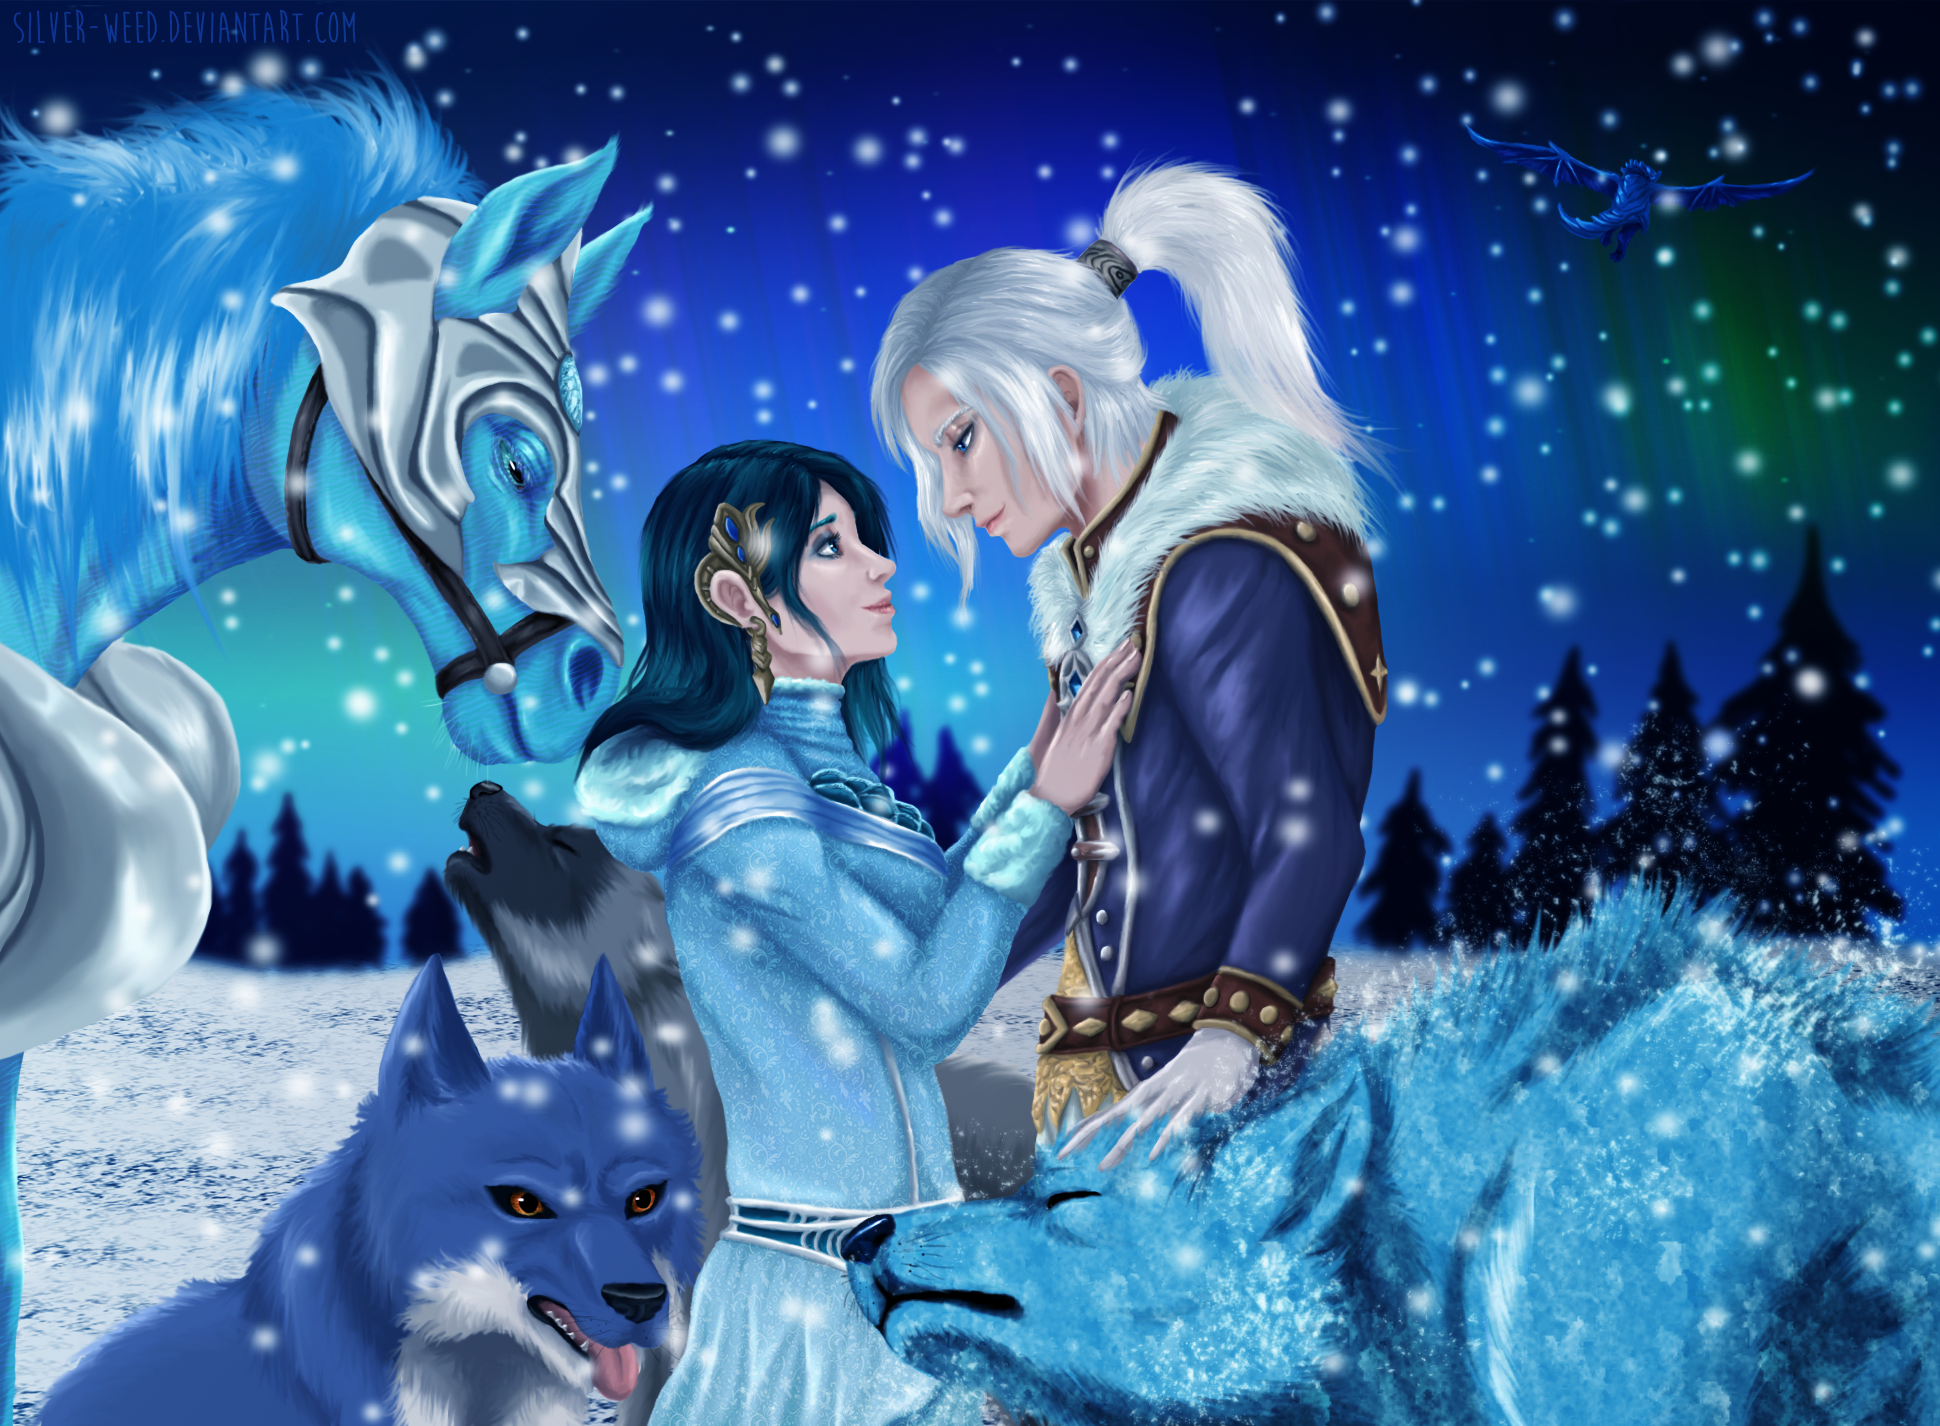 winter_s_embrace_by_silver_weed-dbal3hr.png